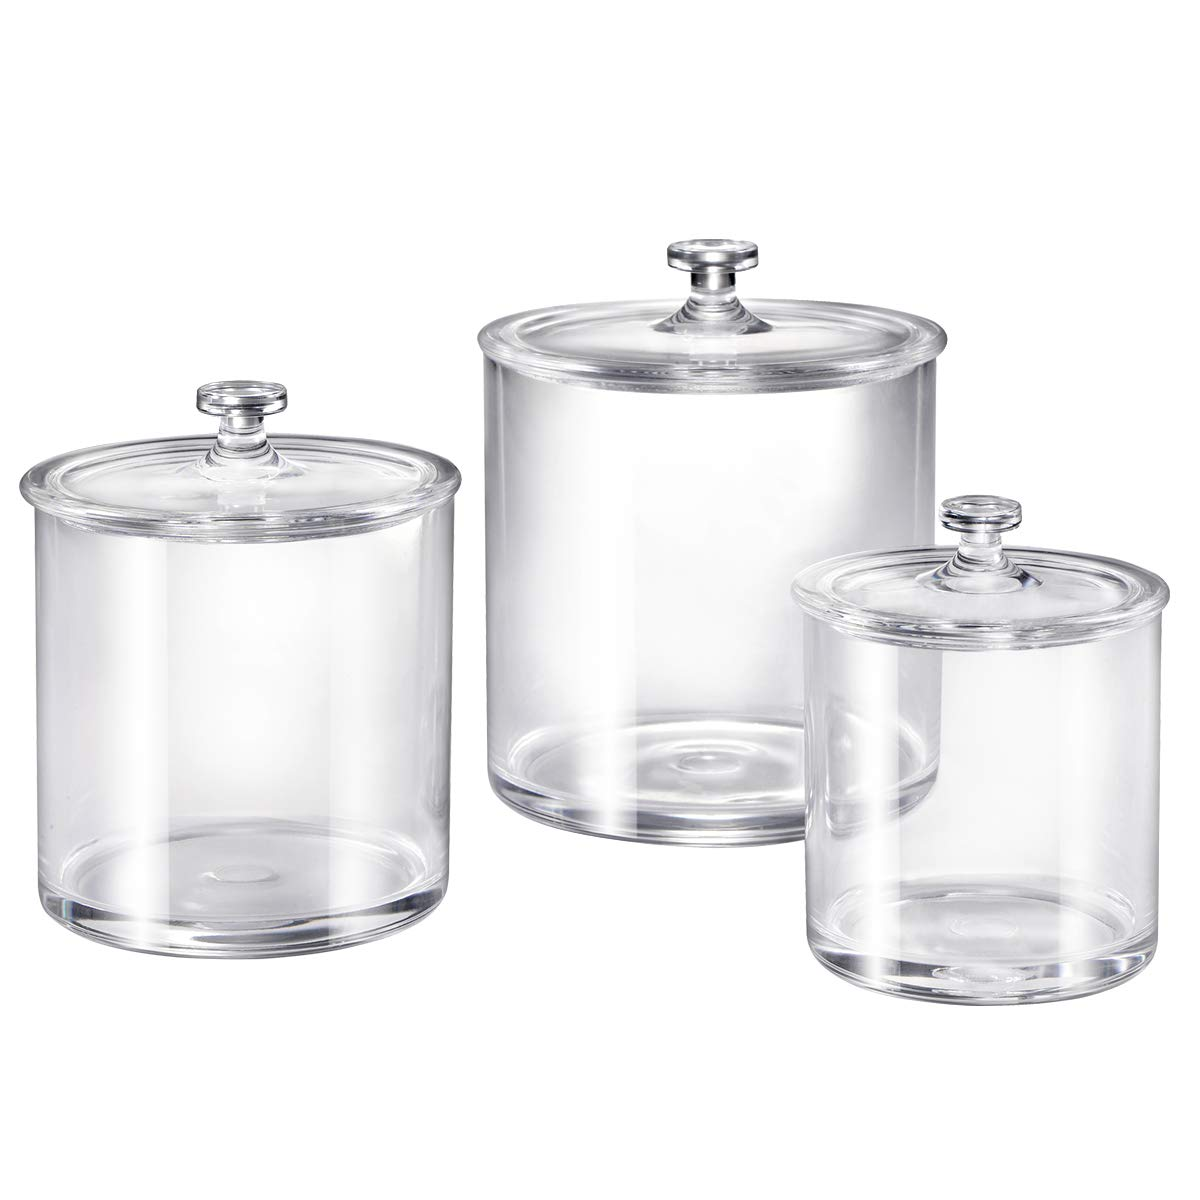 Premium Quality Clear Plastic Apothecary Jars | Set of 3 by Amolliar